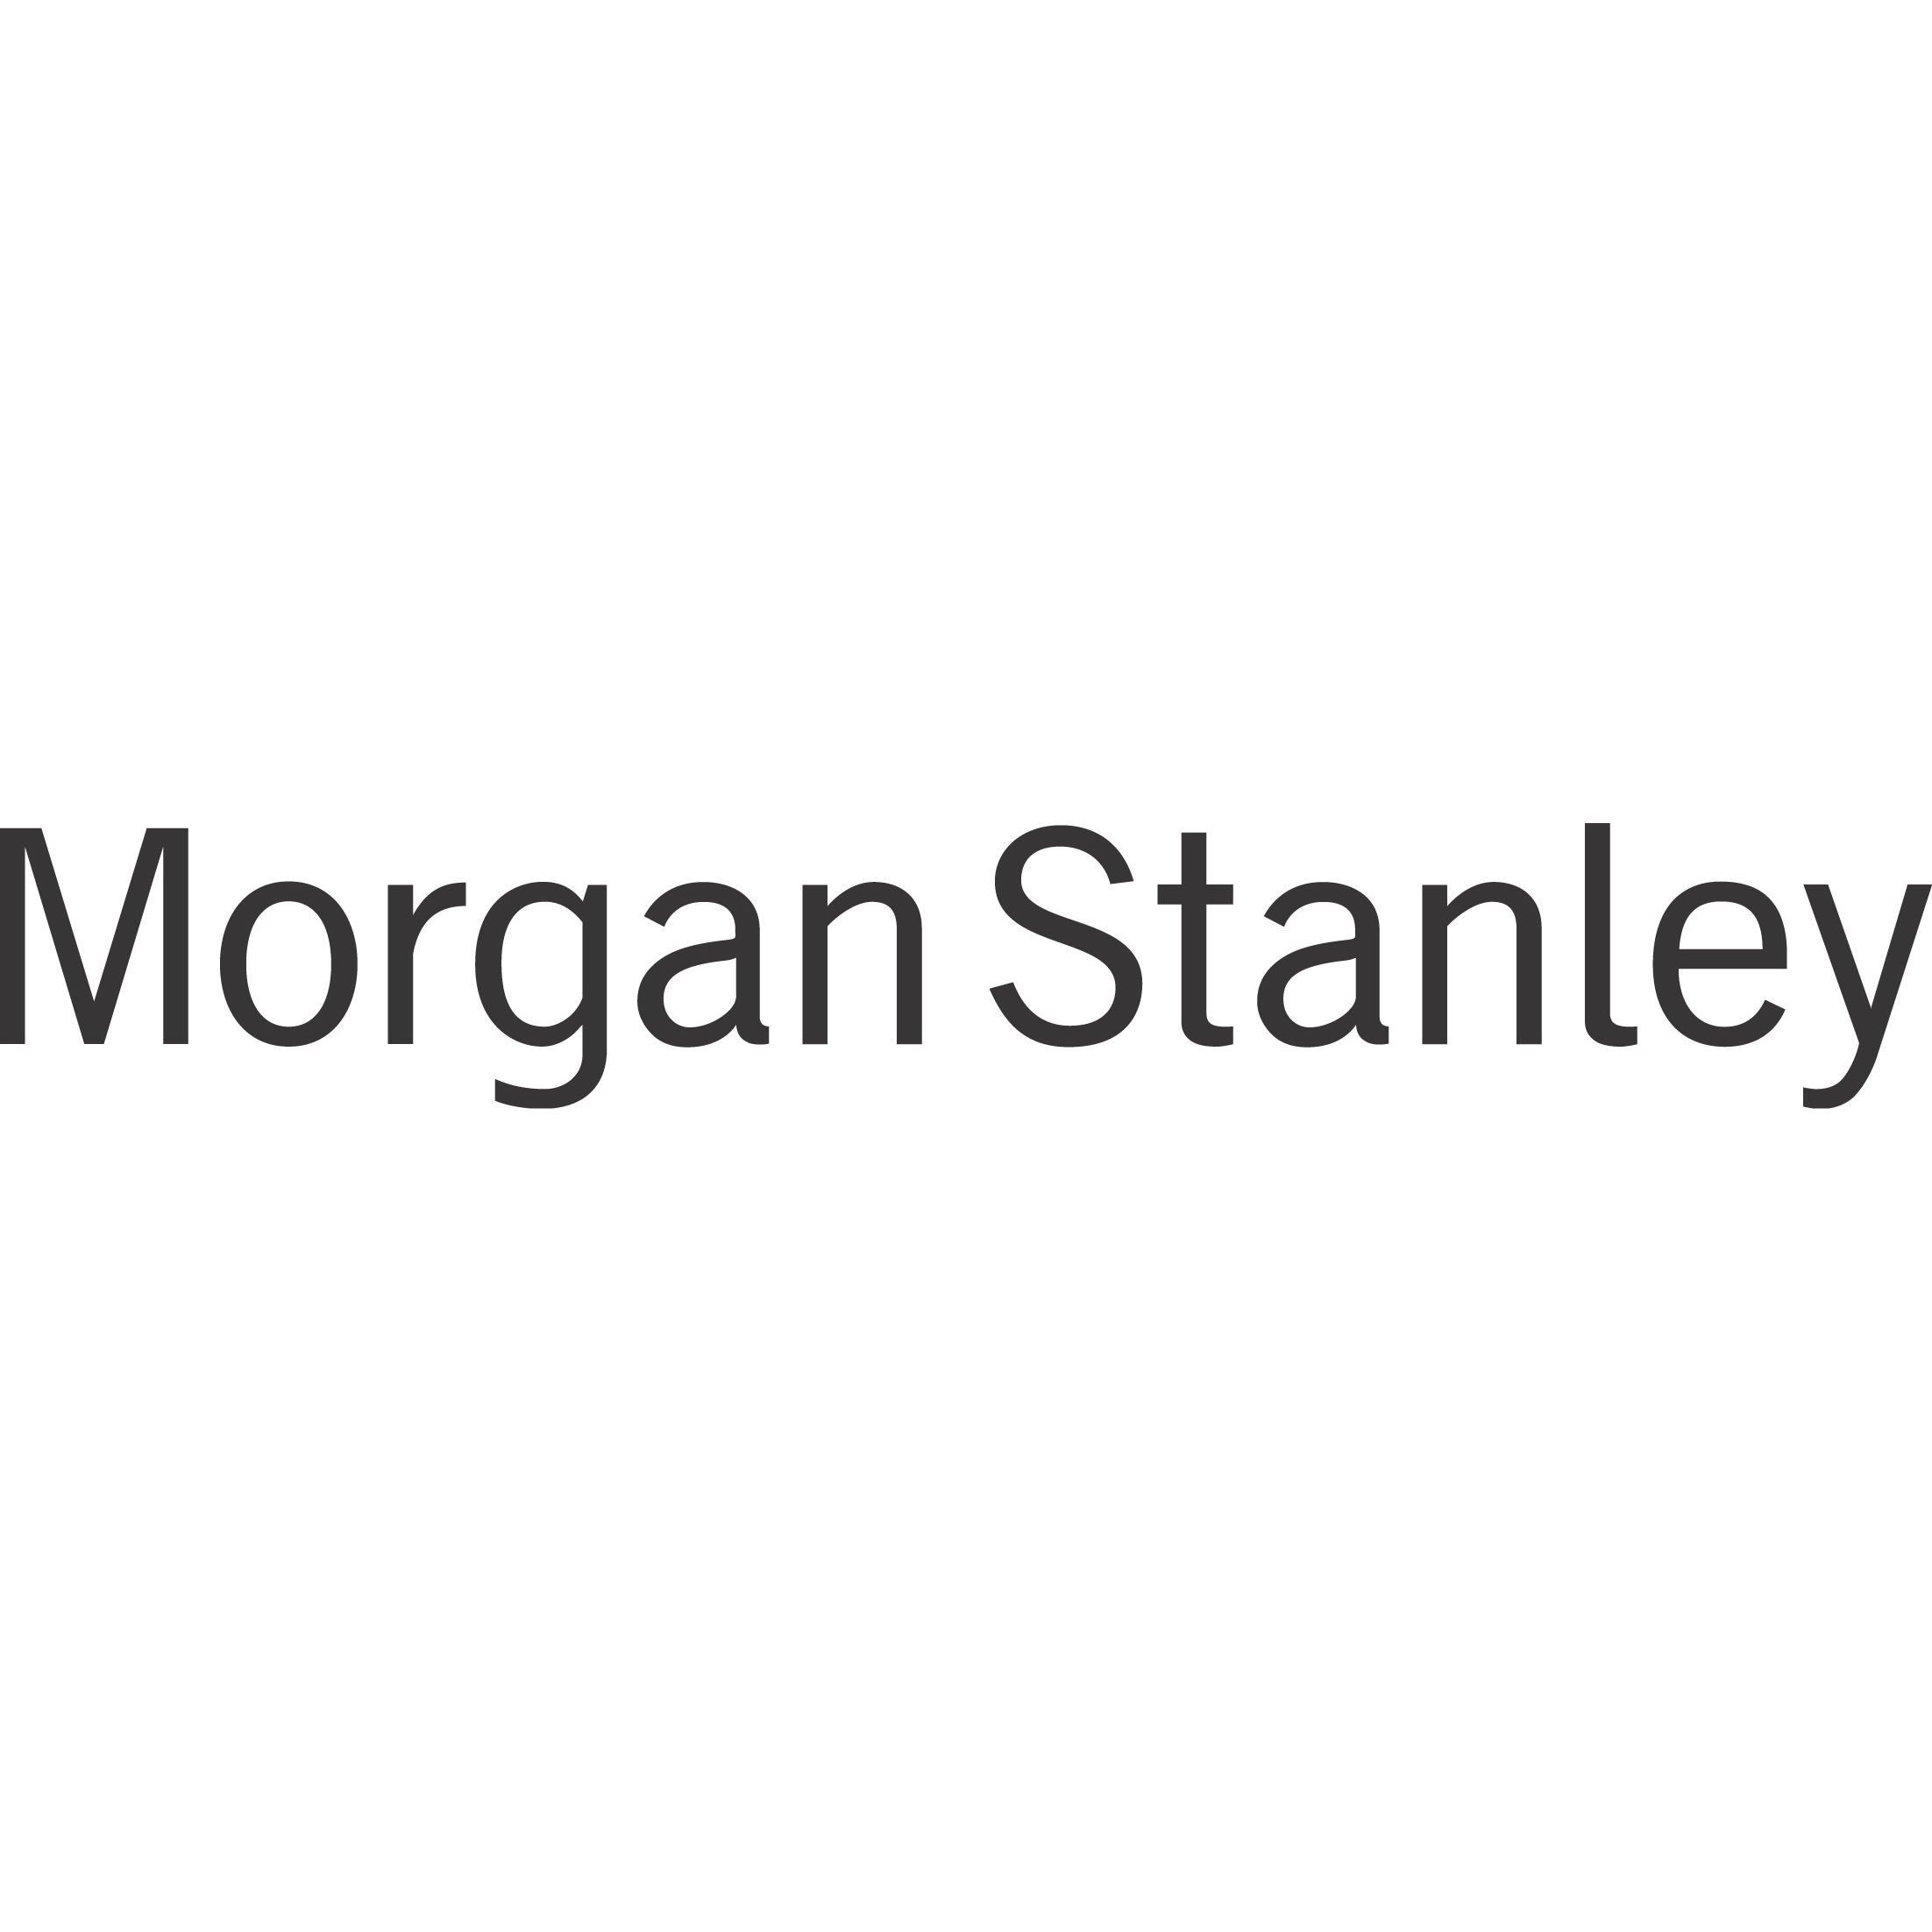 Jennifer McGowan - Morgan Stanley